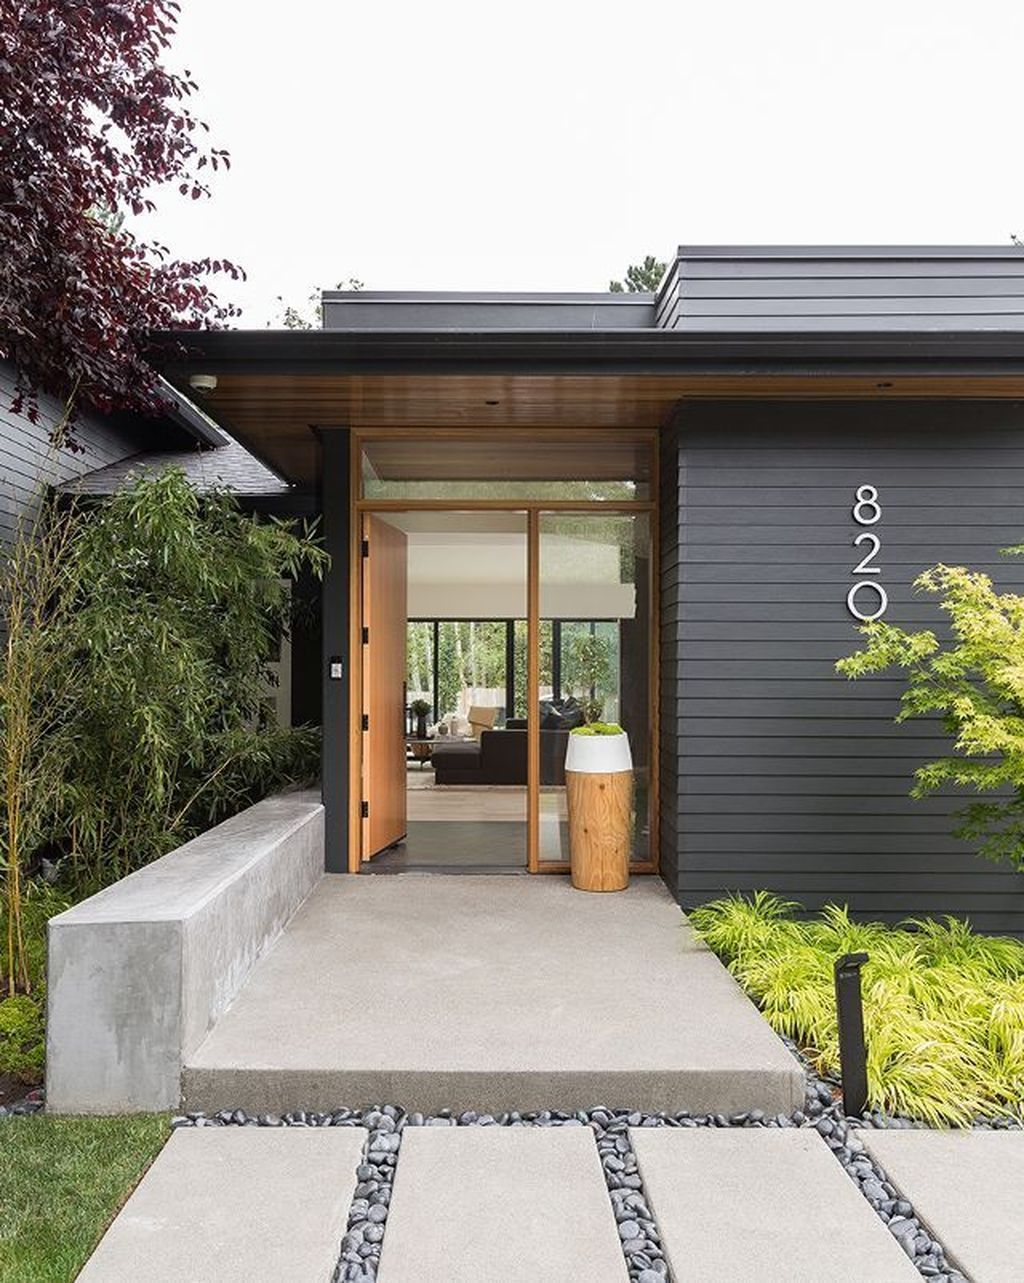 20 Unbelievably Beautiful Contemporary Home Exterior Designs: 20 Best Of Minimalist House Designs [Simple, Unique, And Modern]